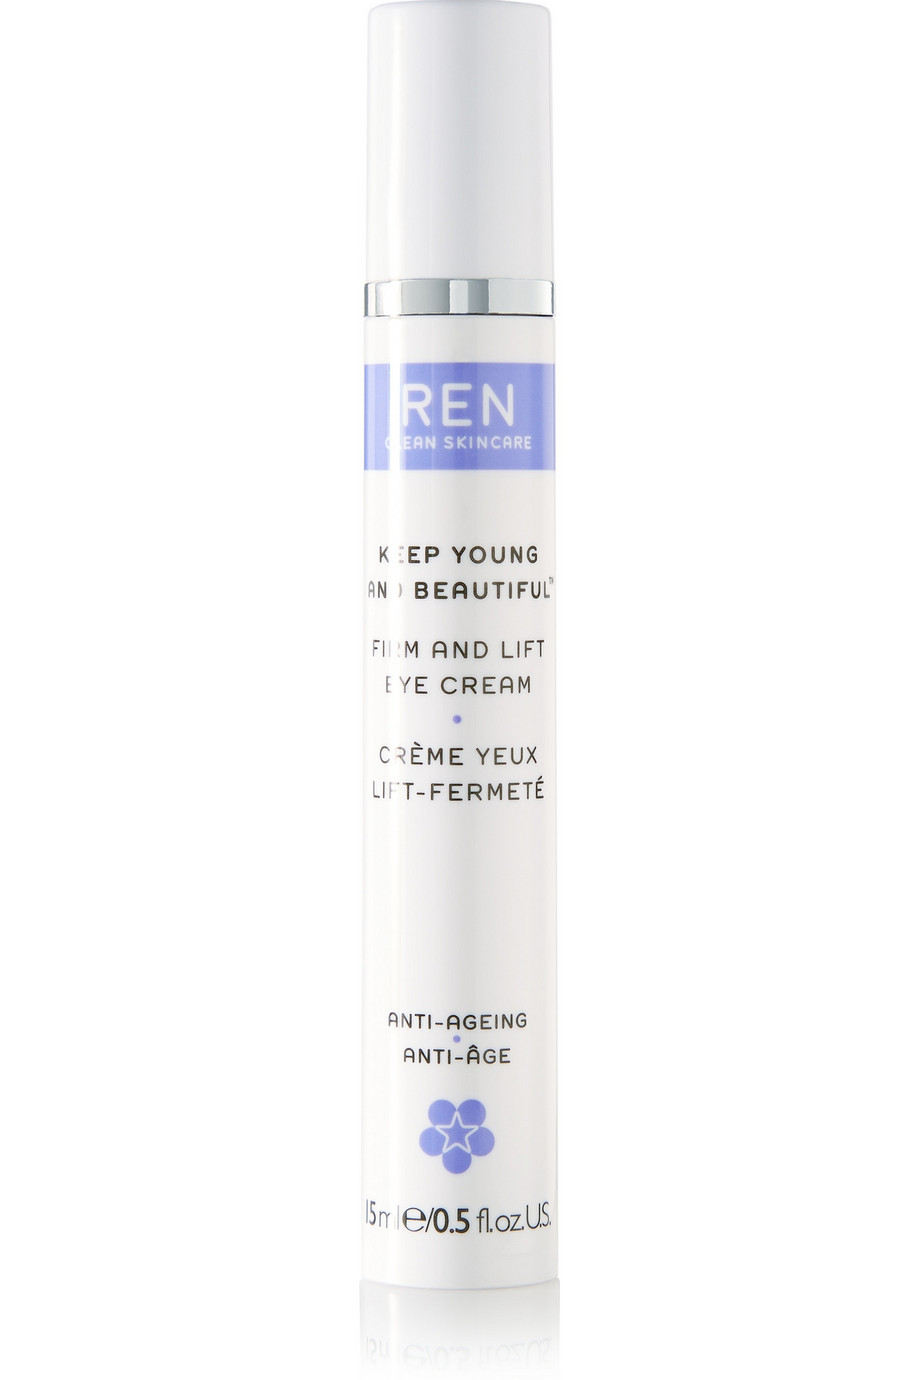 Keep Young and Beautiful Firm and Lift Eye Cream, 15ml, by Ren Skincare